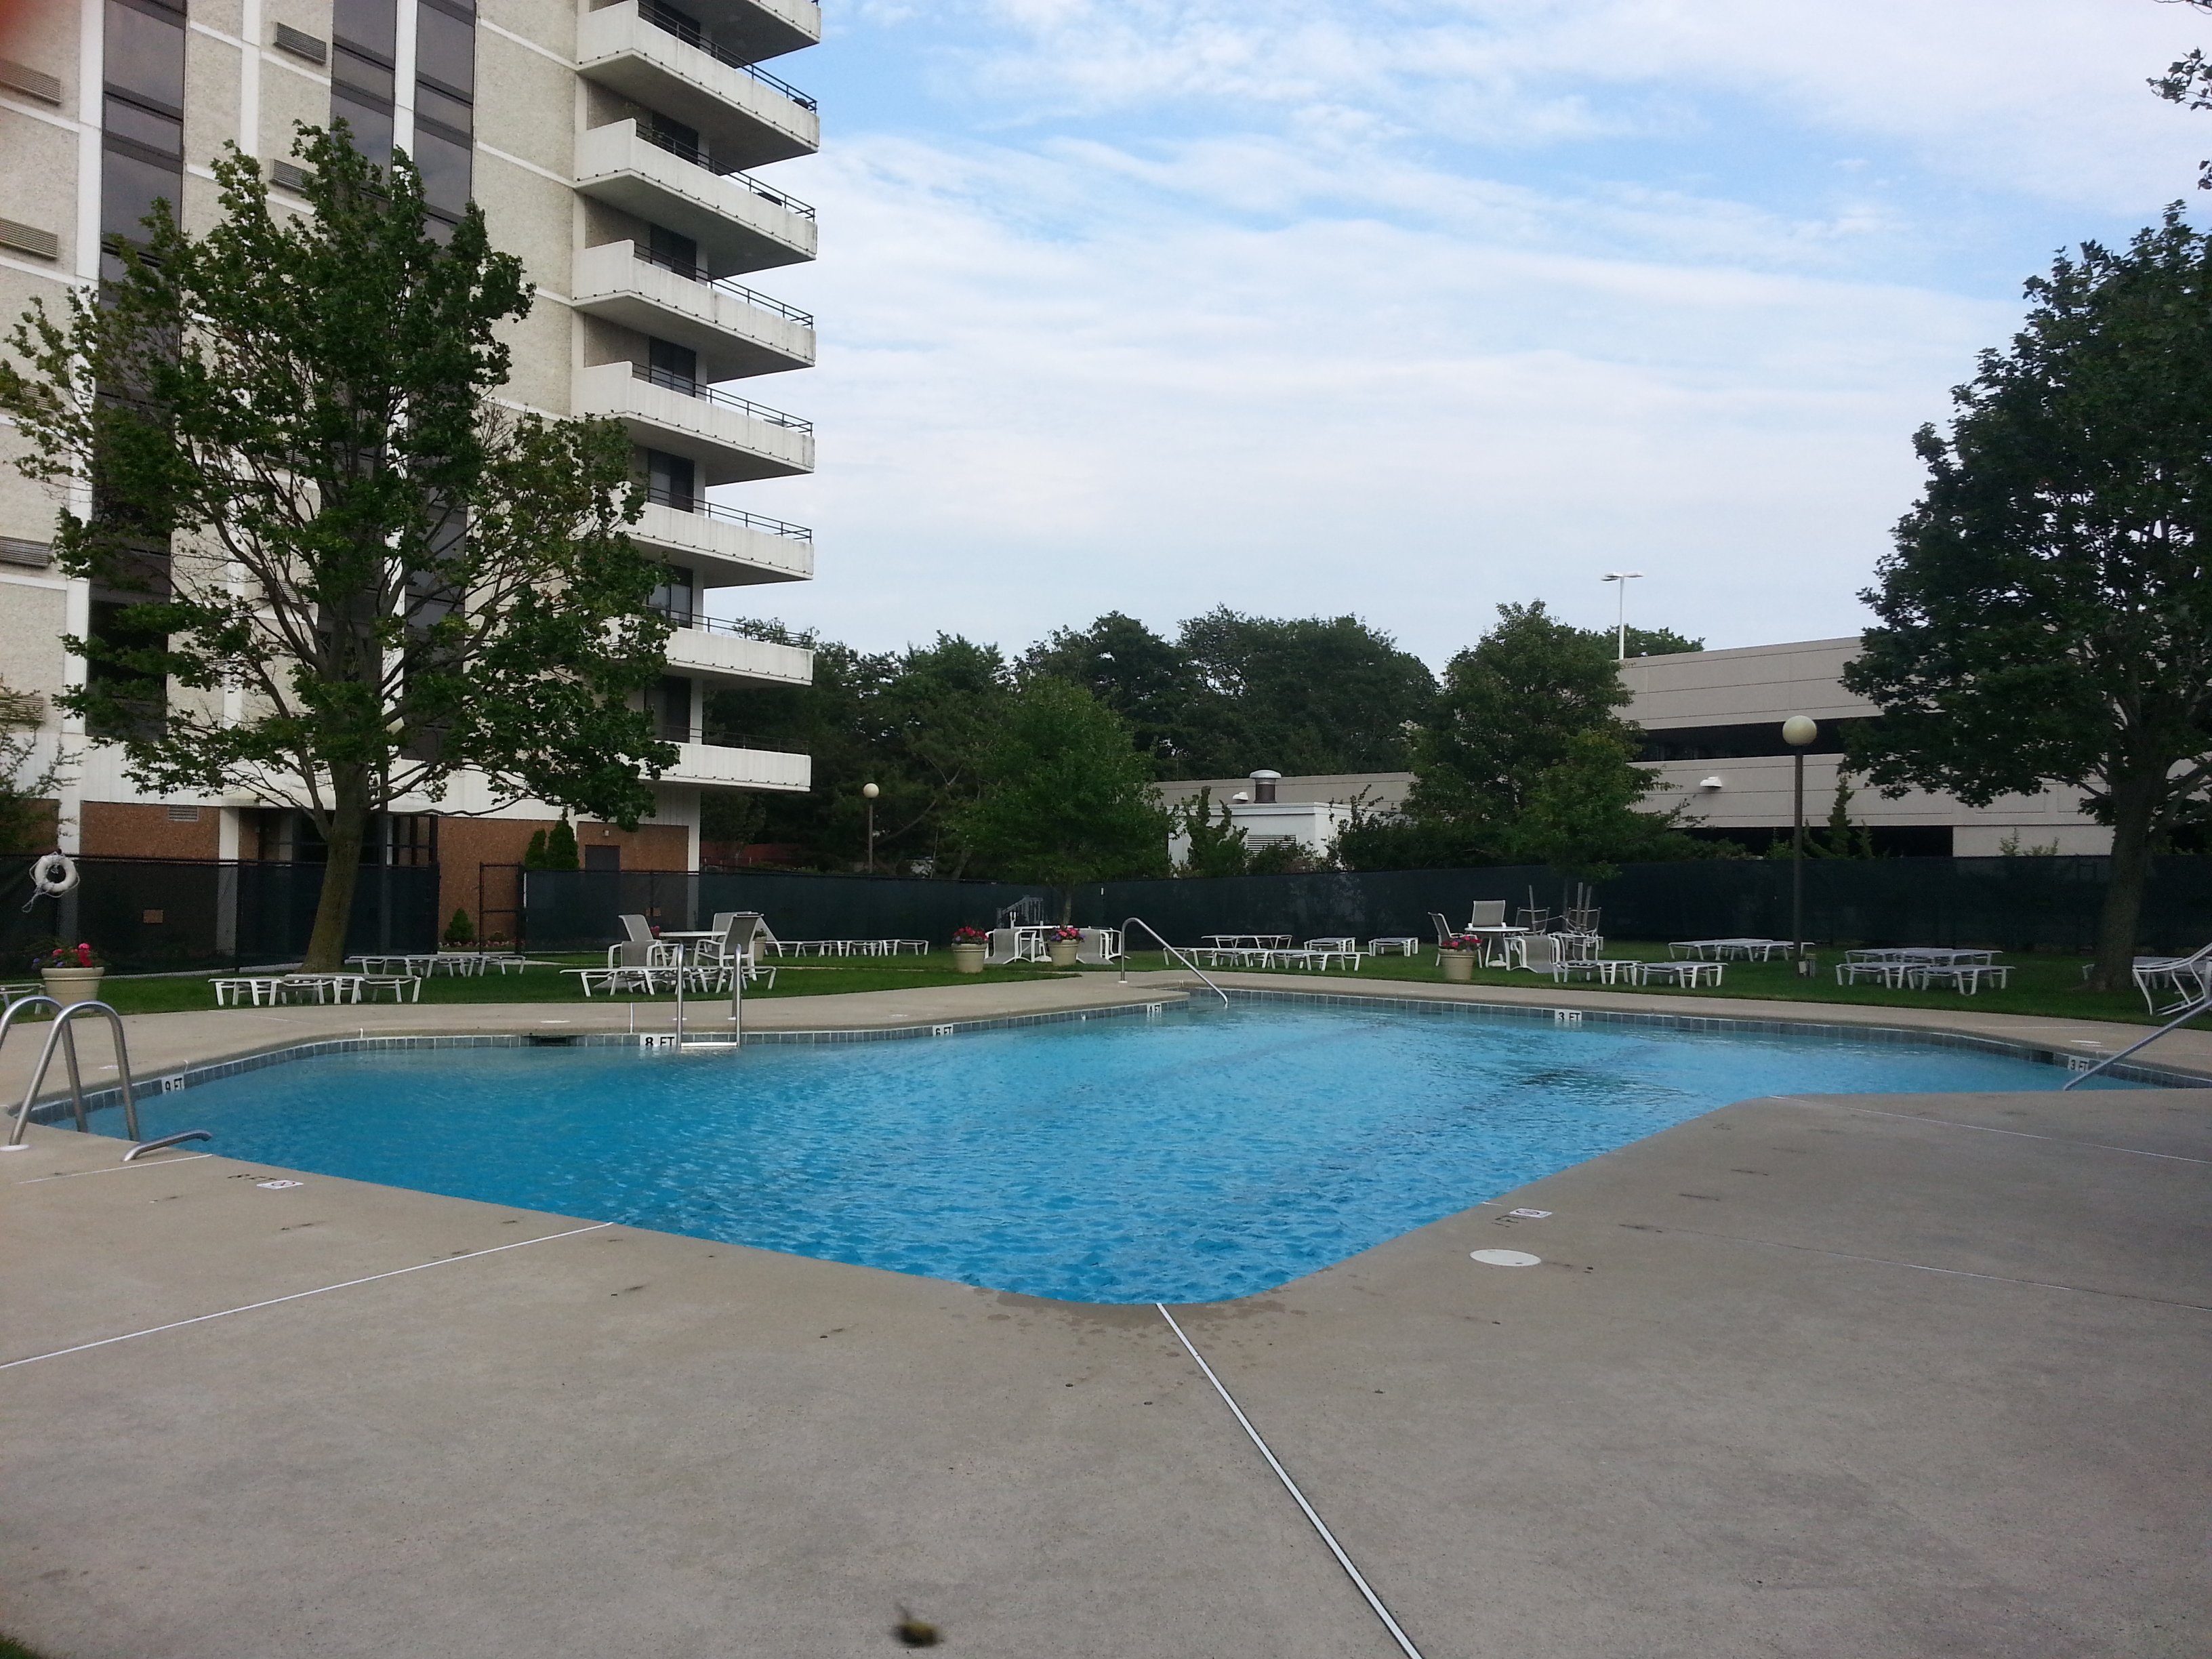 The pool is heated with plenty of chairs and is lifeguard protected during the day.